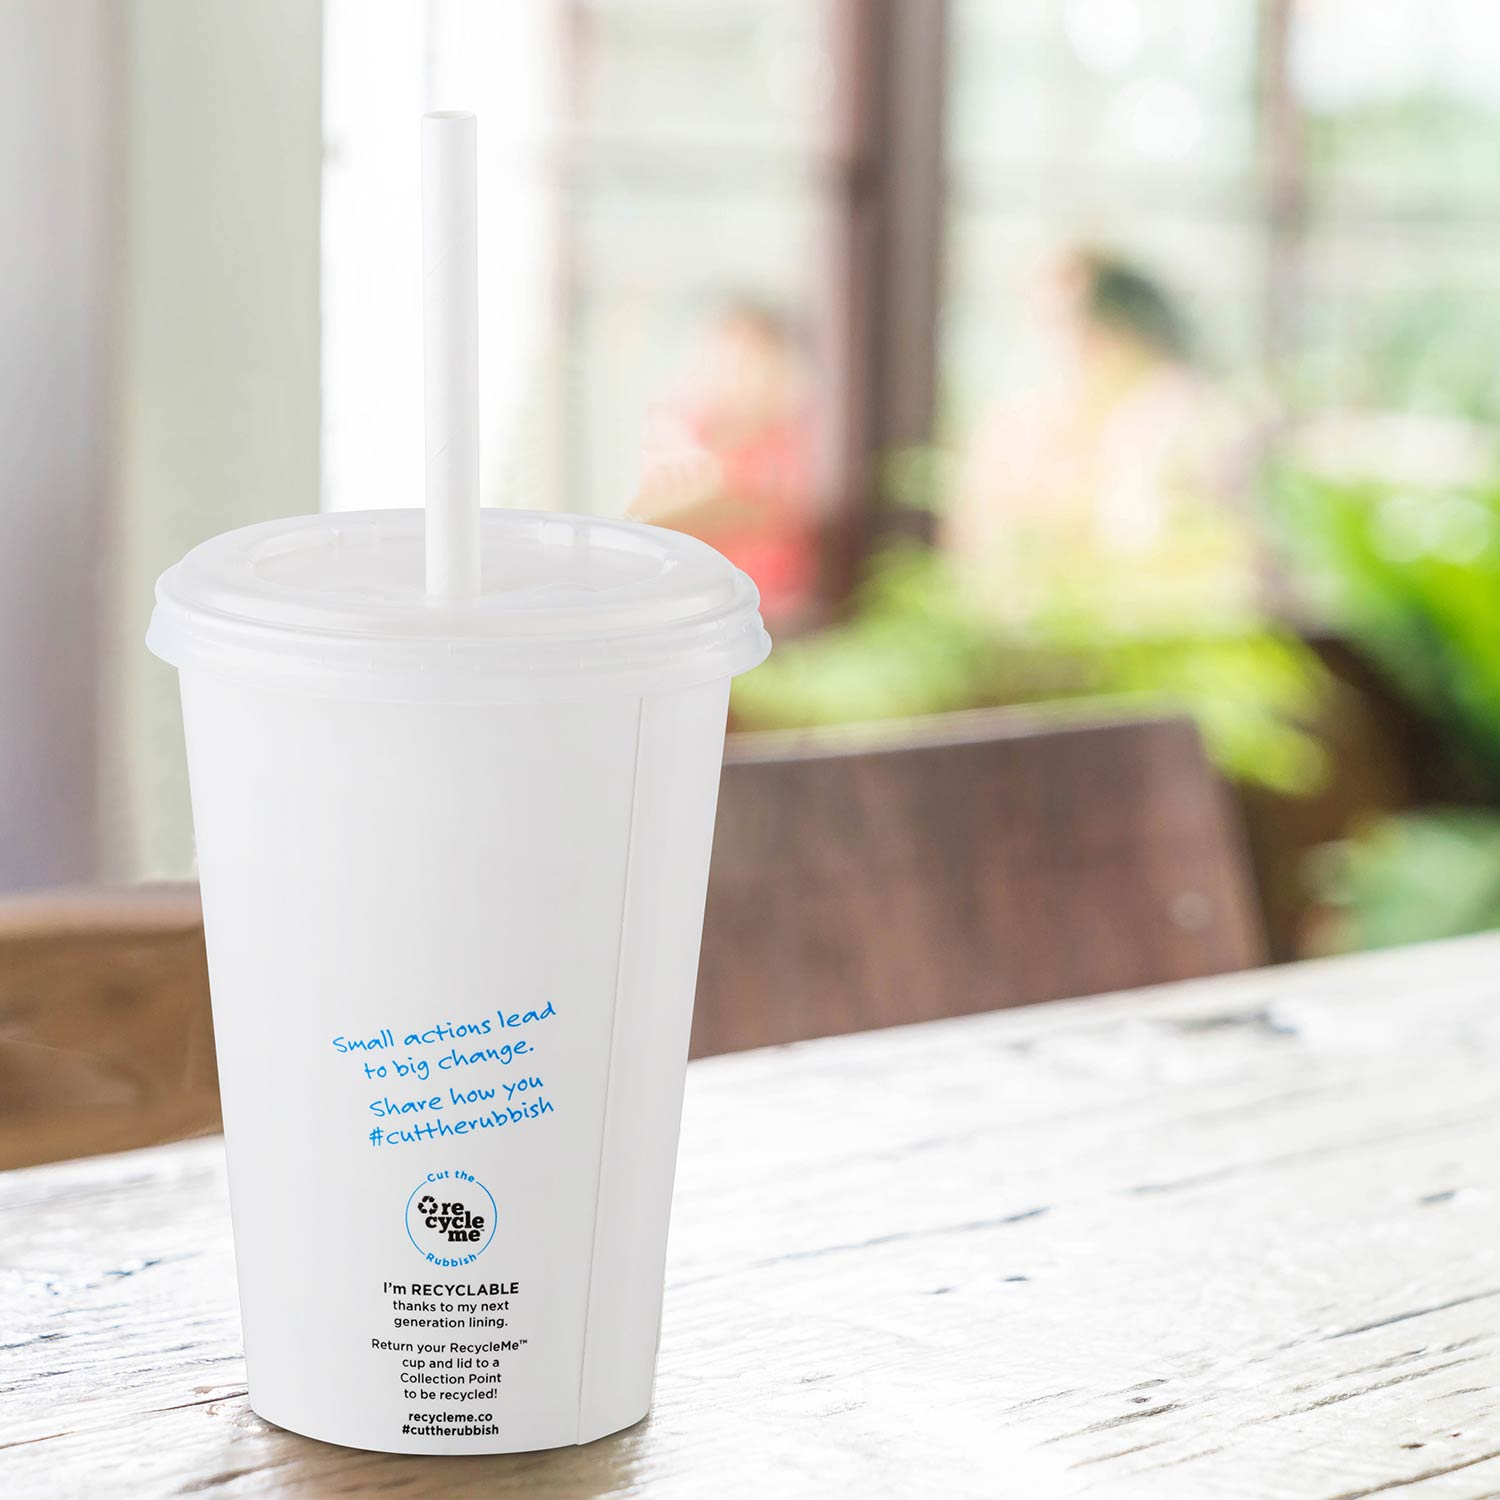 Image of Detpak RecycleMe Cold Cup on table in cafe